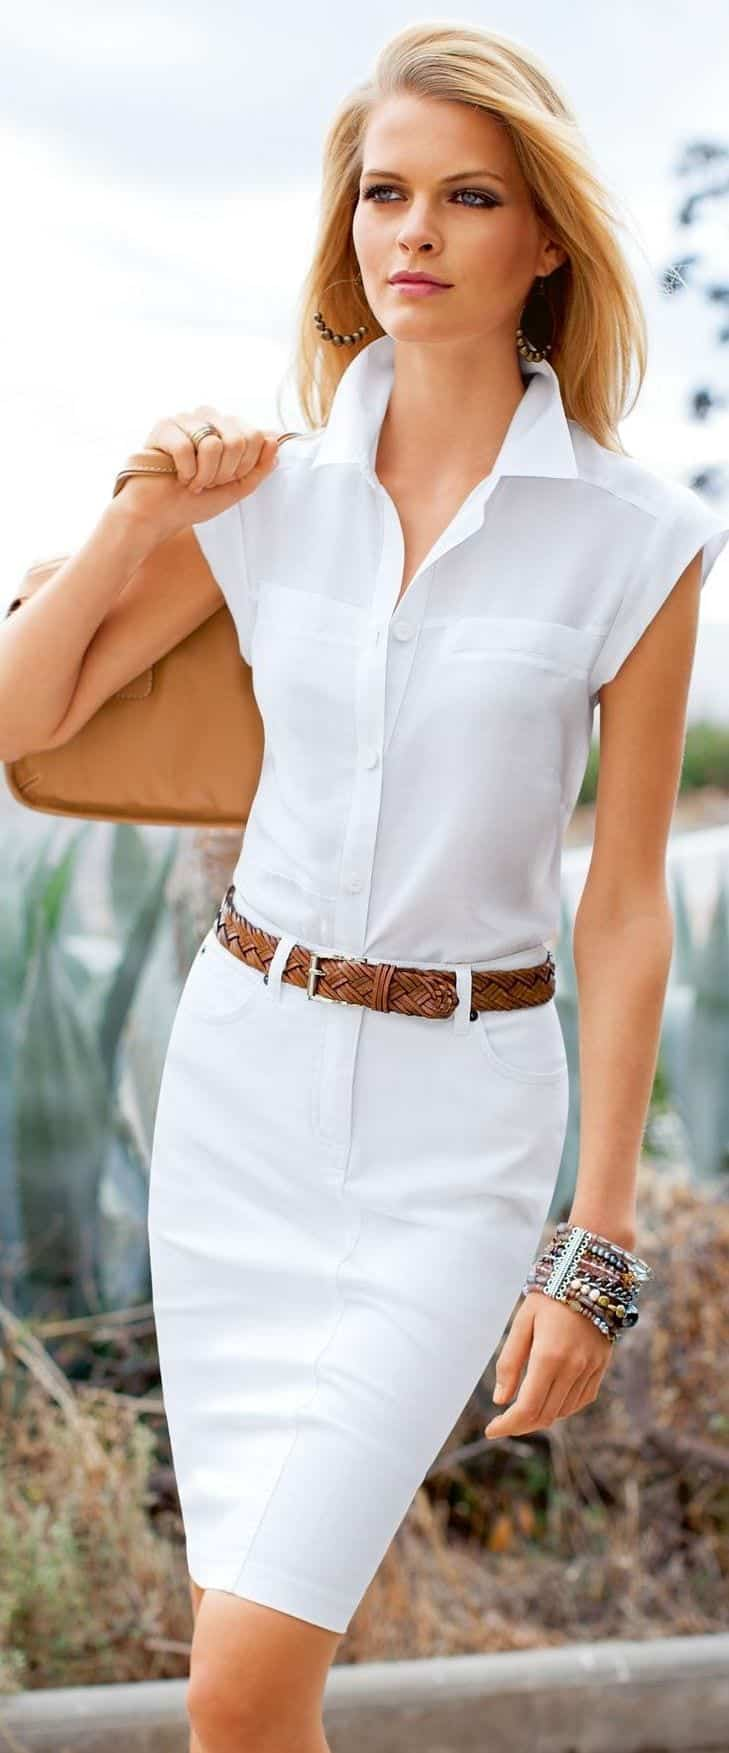 49 Fresh Outfits With White Shirts Pairing Styling Ideas